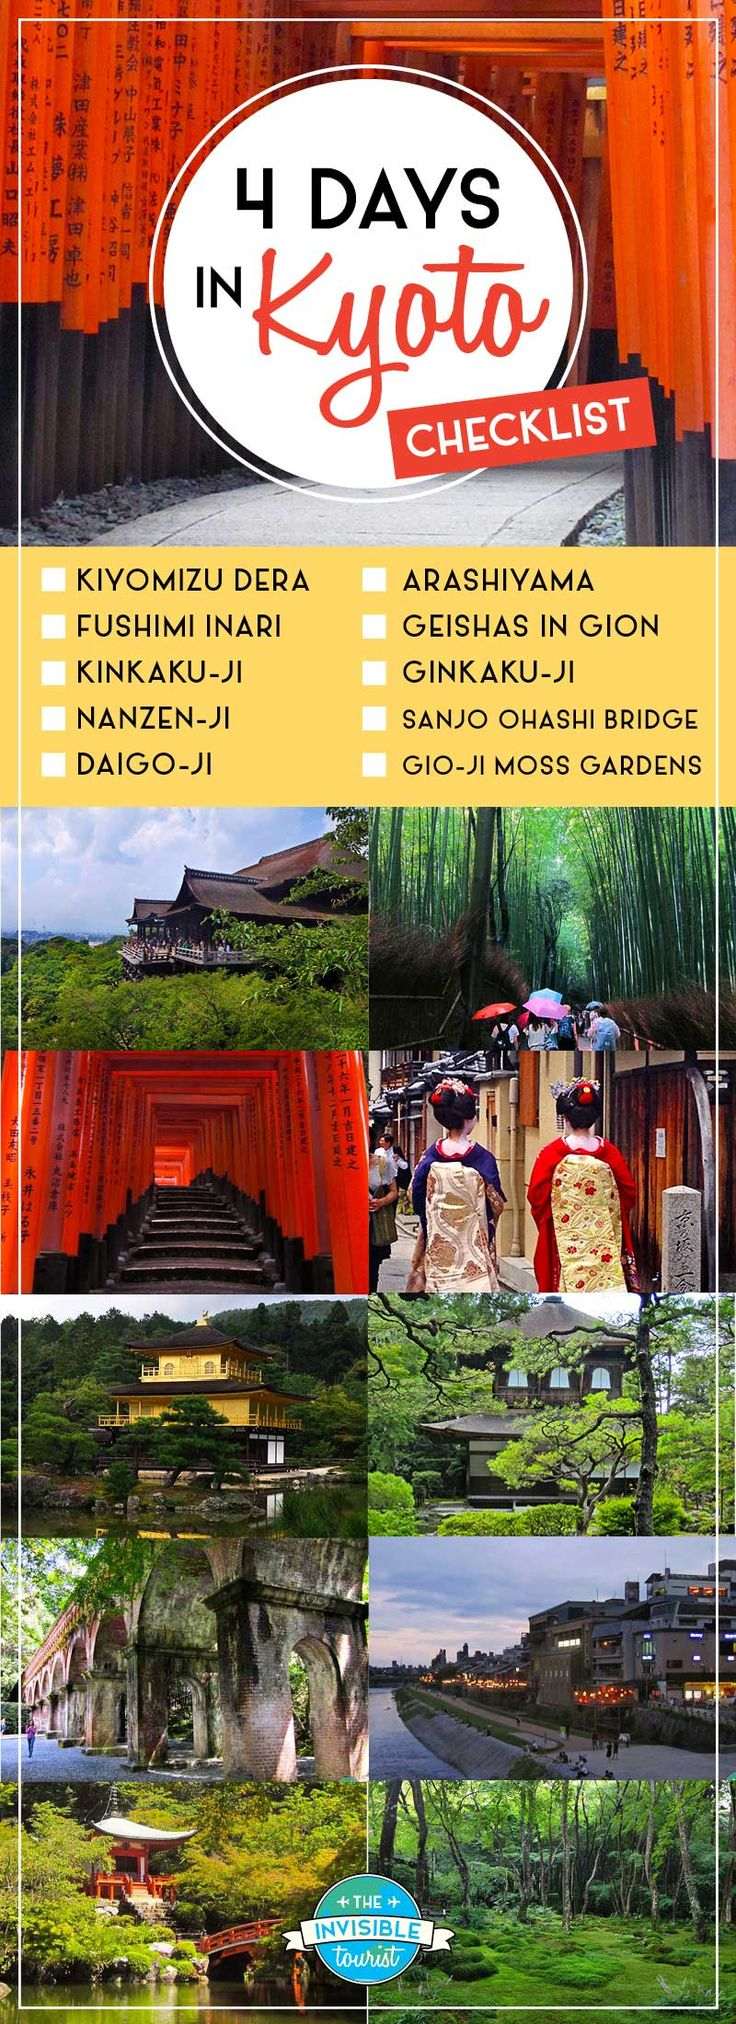 Kyoto Checklist | The Invisible Tourist